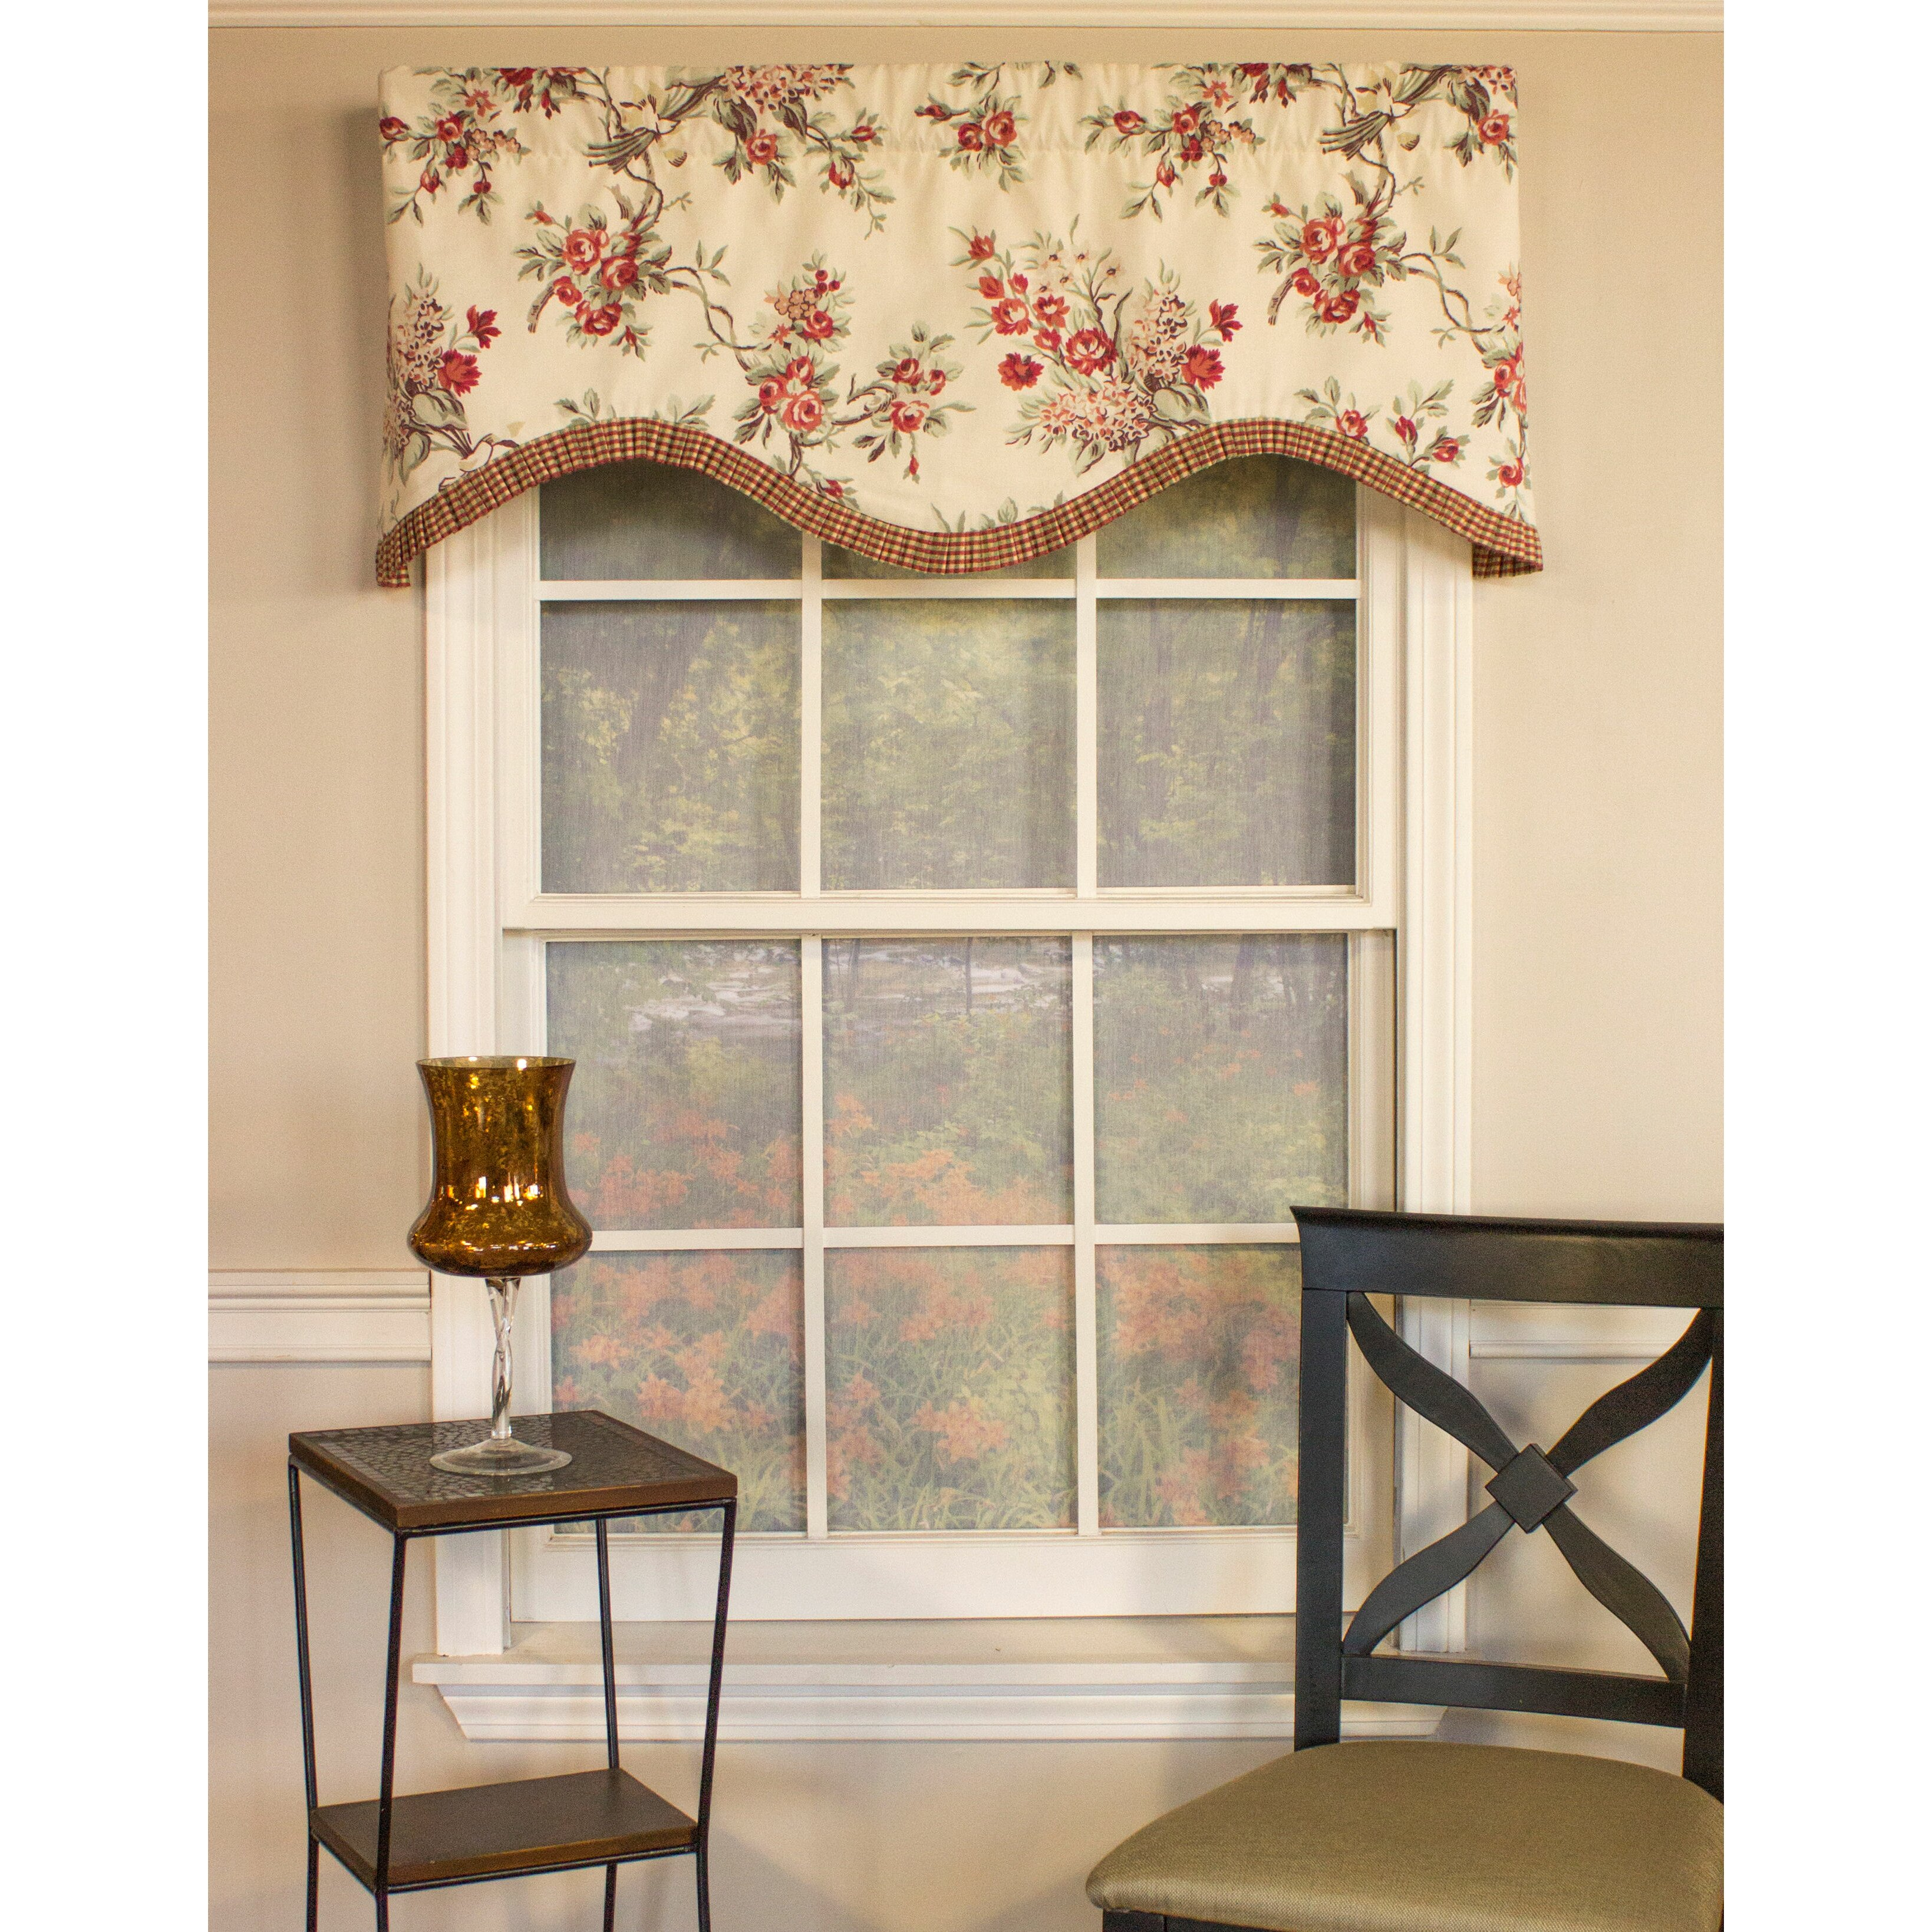 Rlf Home Branching Out Cornice 50 Curtain Valance